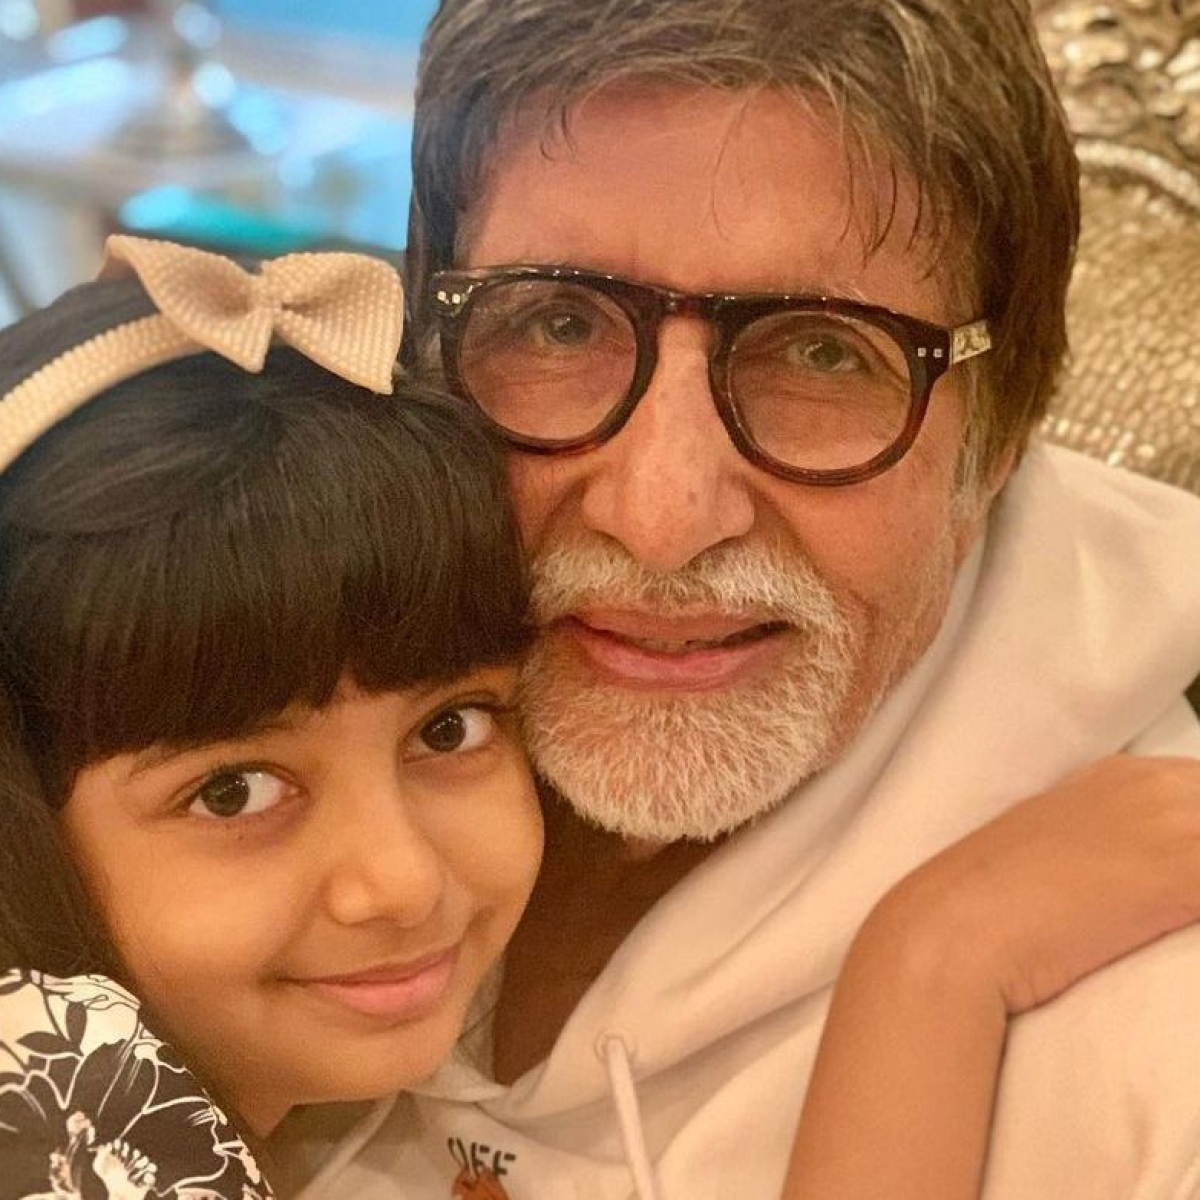 As Aaradhya turns 9, grandfather Amitabh Bachchan shares nine pictures from her growing years